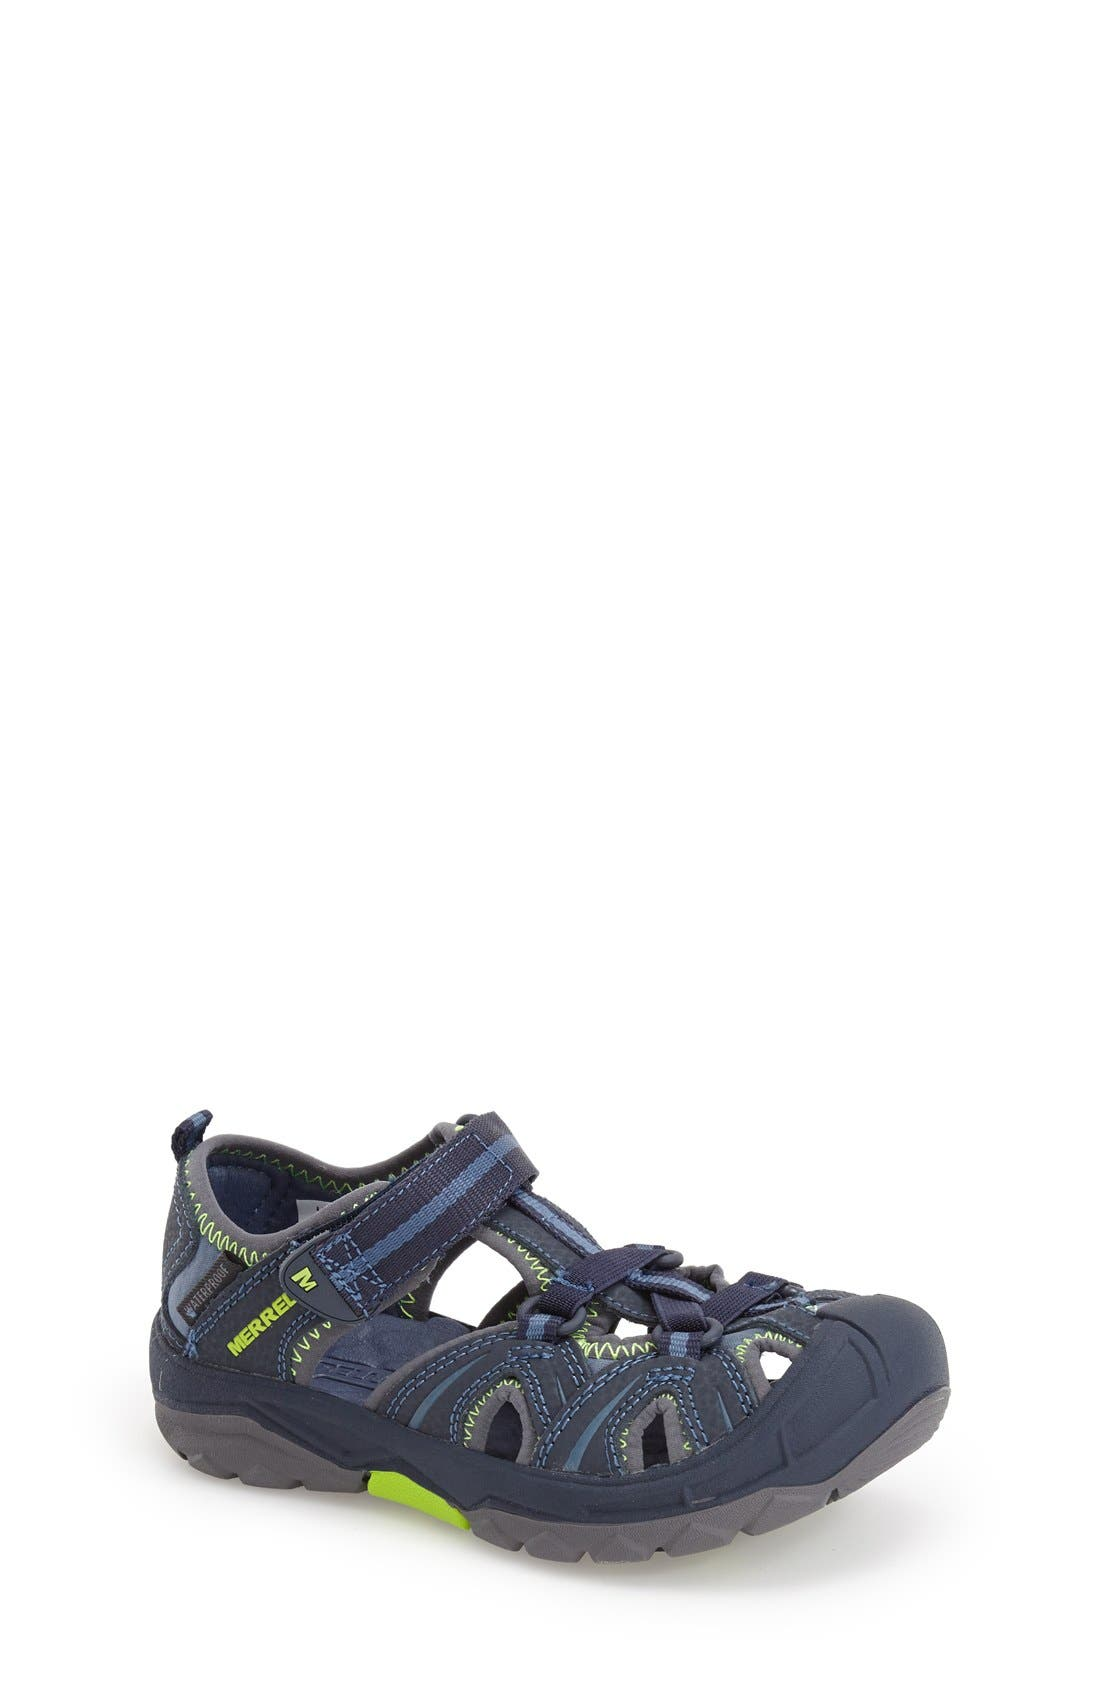 Merrell 'Hydro' Water Sandal (Toddler, Little Kid & Big Kid)